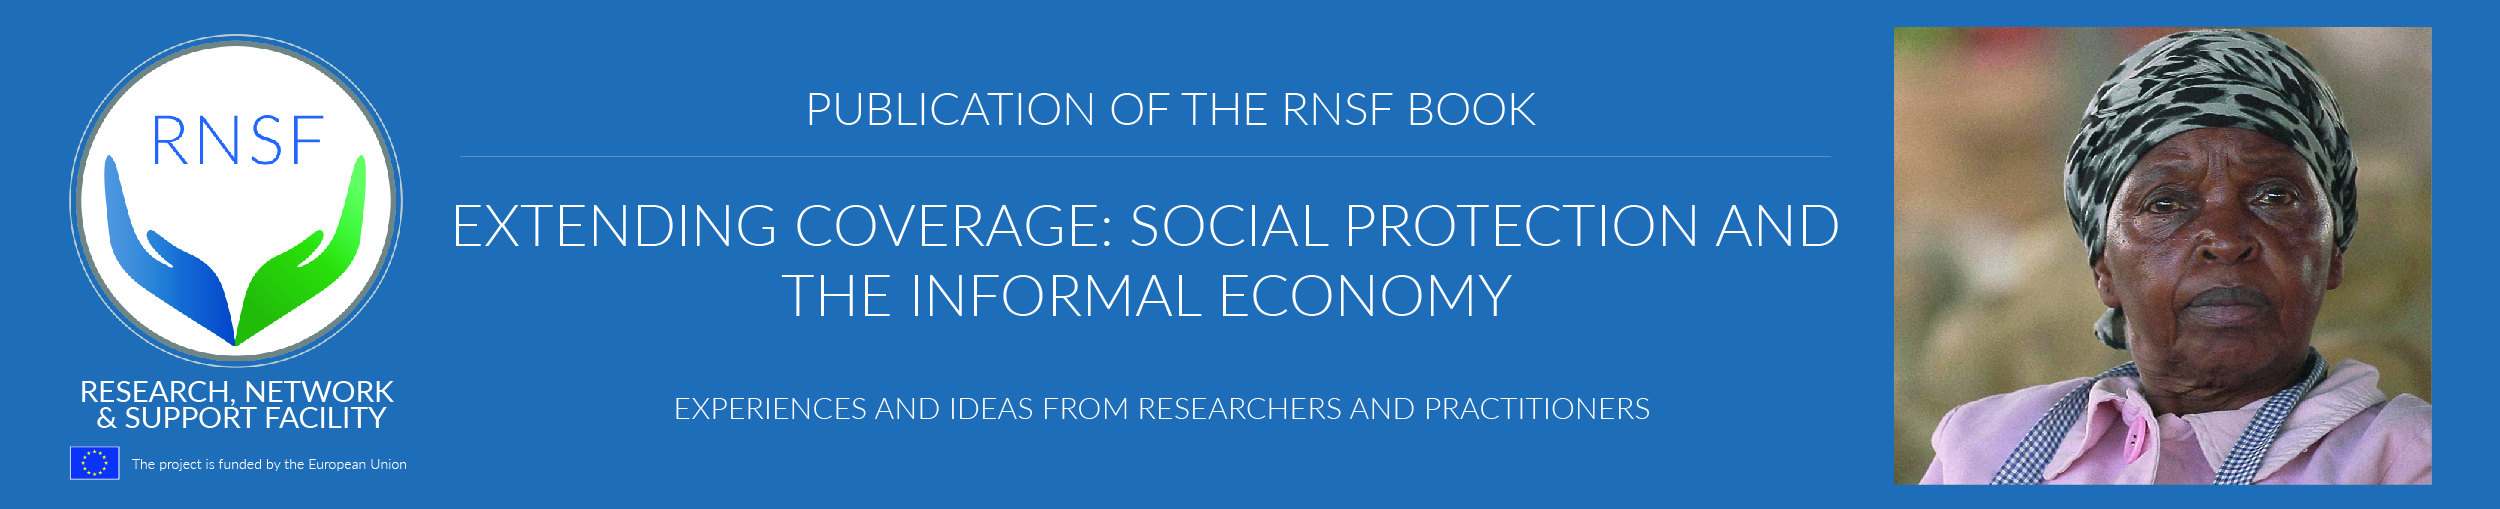 RNSF Book social protection informal economy